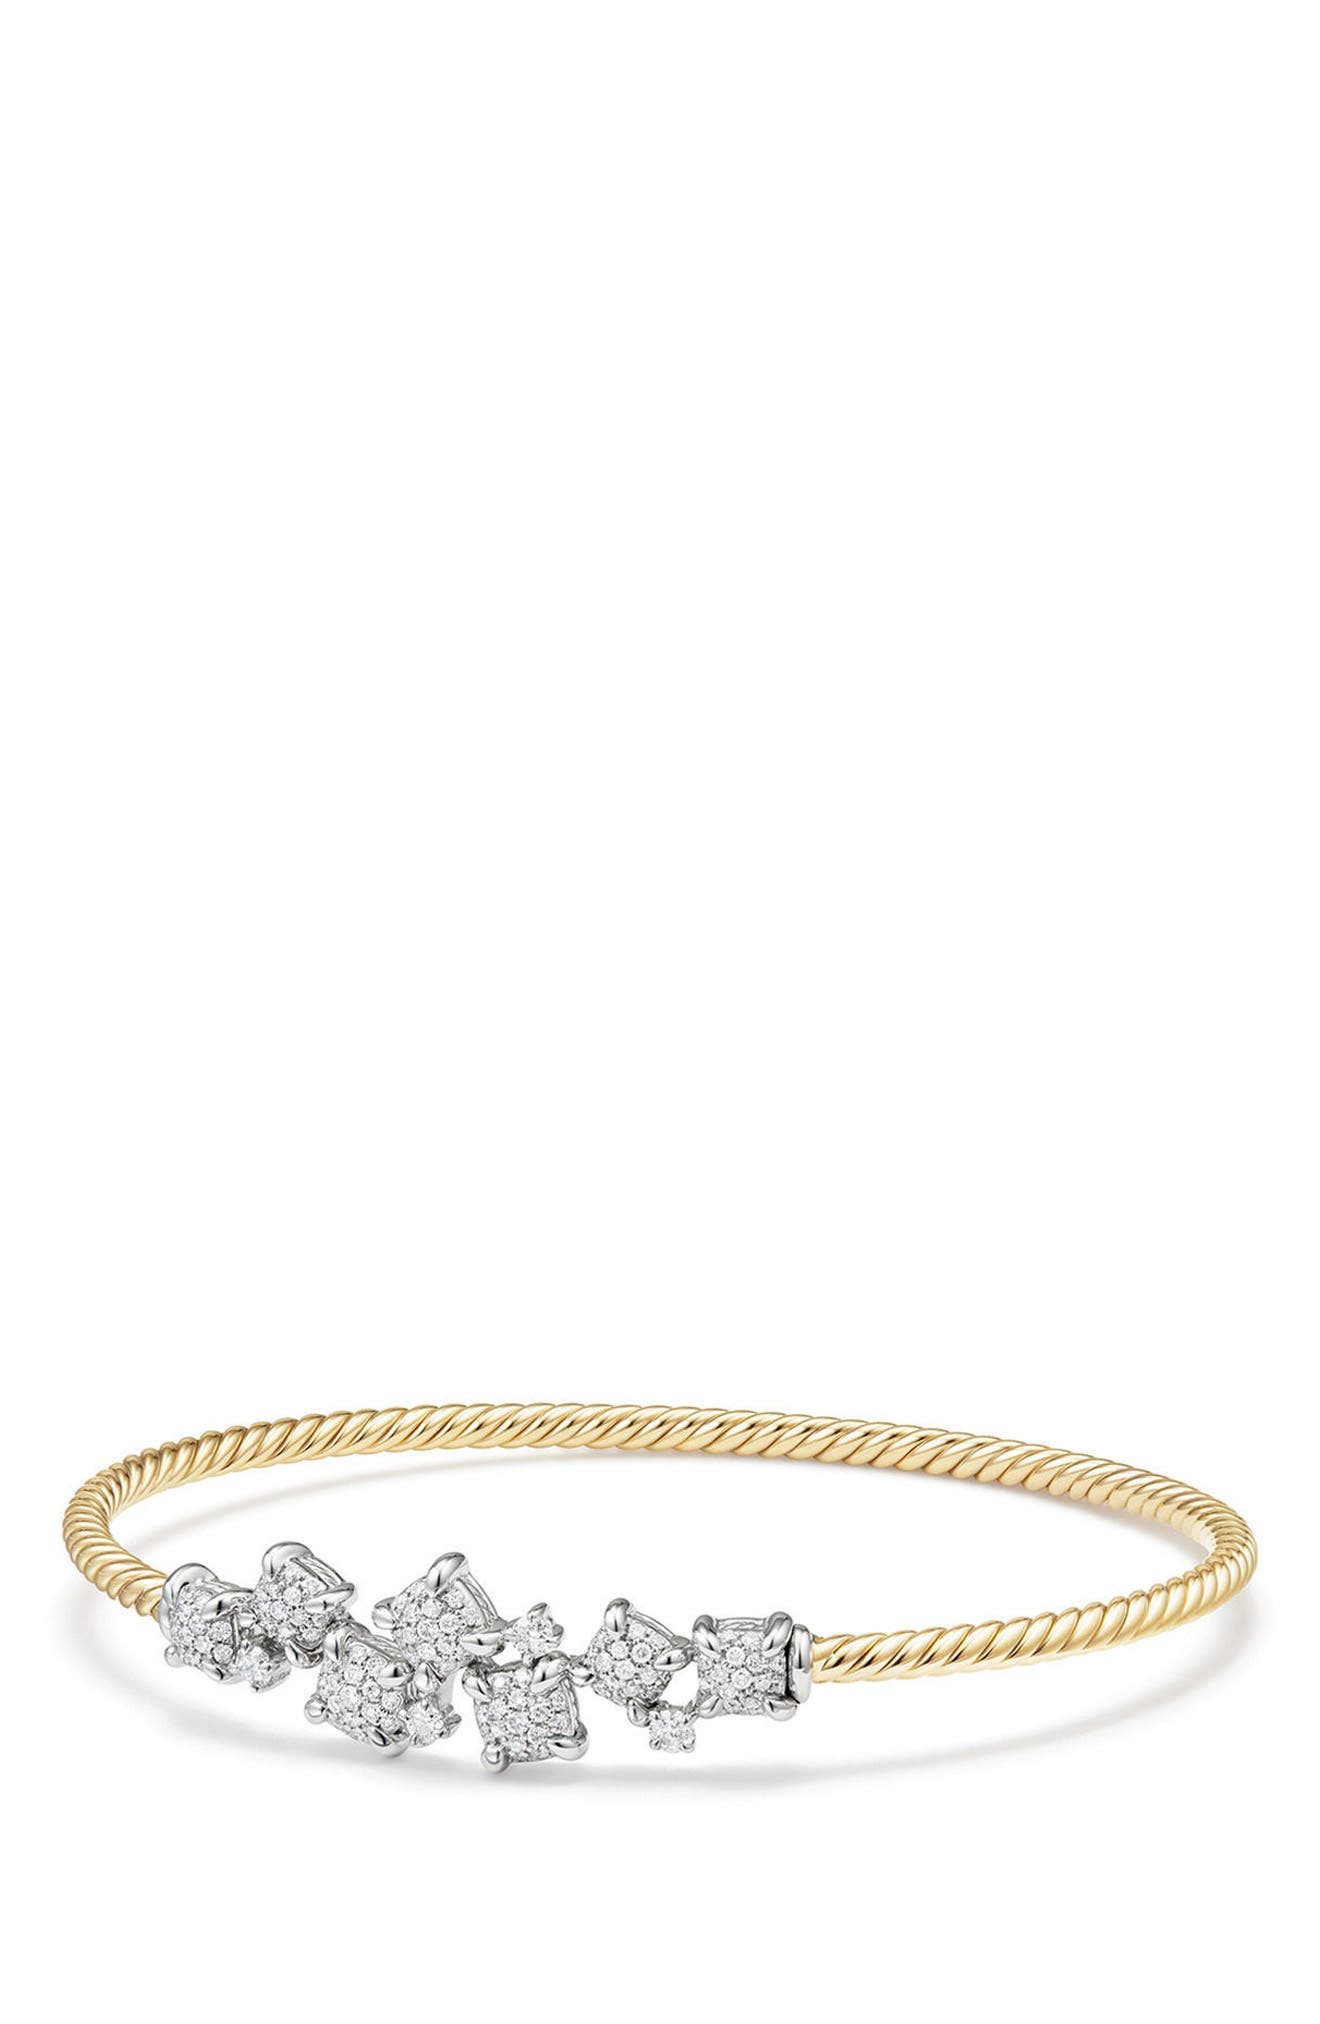 Precious Châtelaine Bracelet with Diamonds in 18K Gold,                         Main,                         color, Yellow Gold/ Diamond